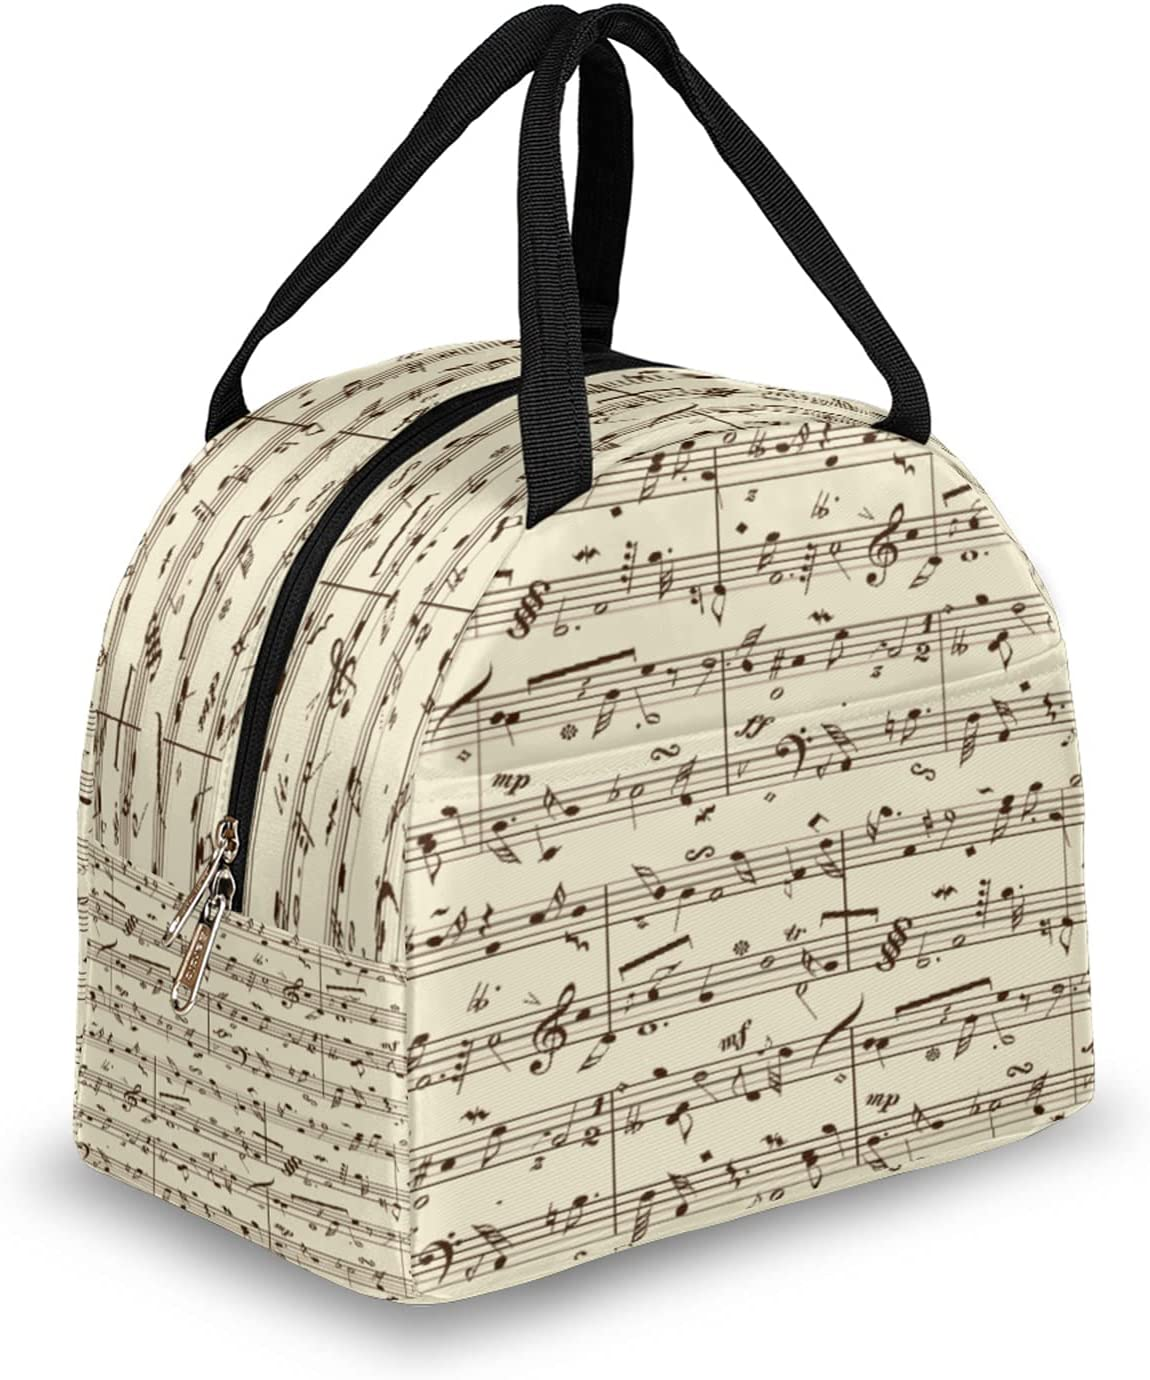 Insulated Lunch Price reduction Popular brand Bag for Women Pattern Note Reusable Music